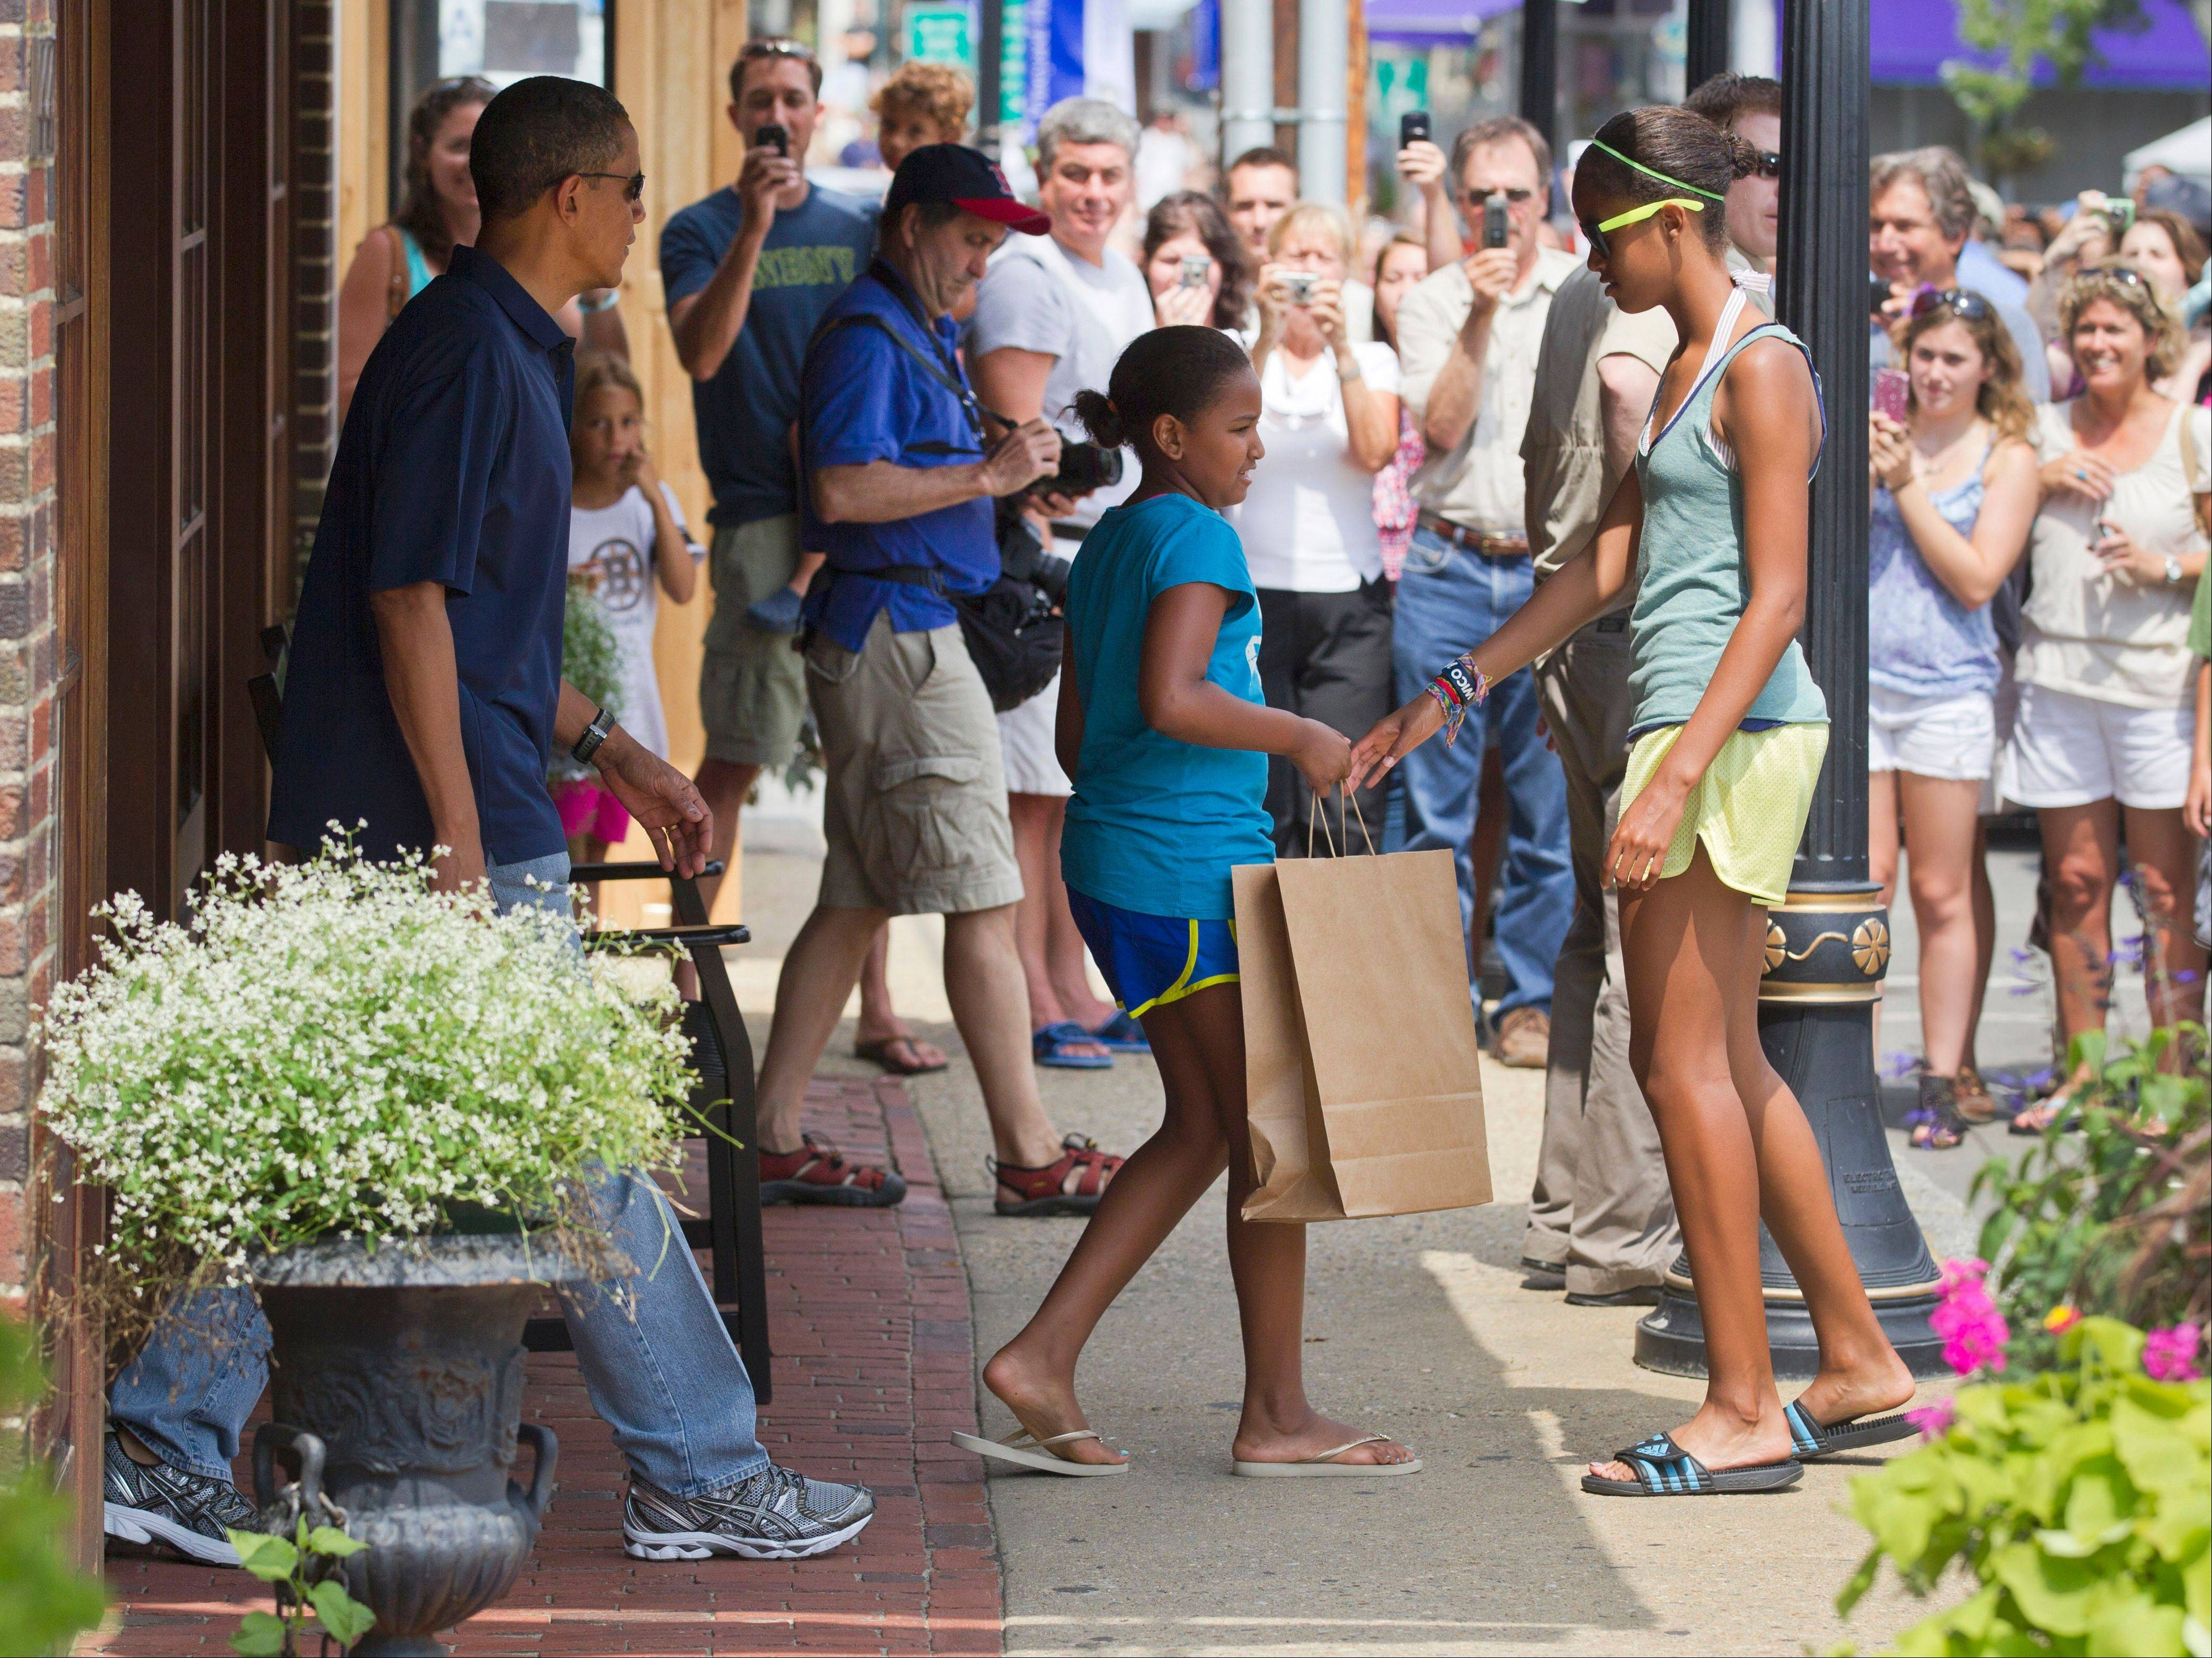 President Barack Obama, with his daughters Malia, right, and Sasha, center, leave the Bunch of Grapes book store Friday in Vineyard Haven, Mass.